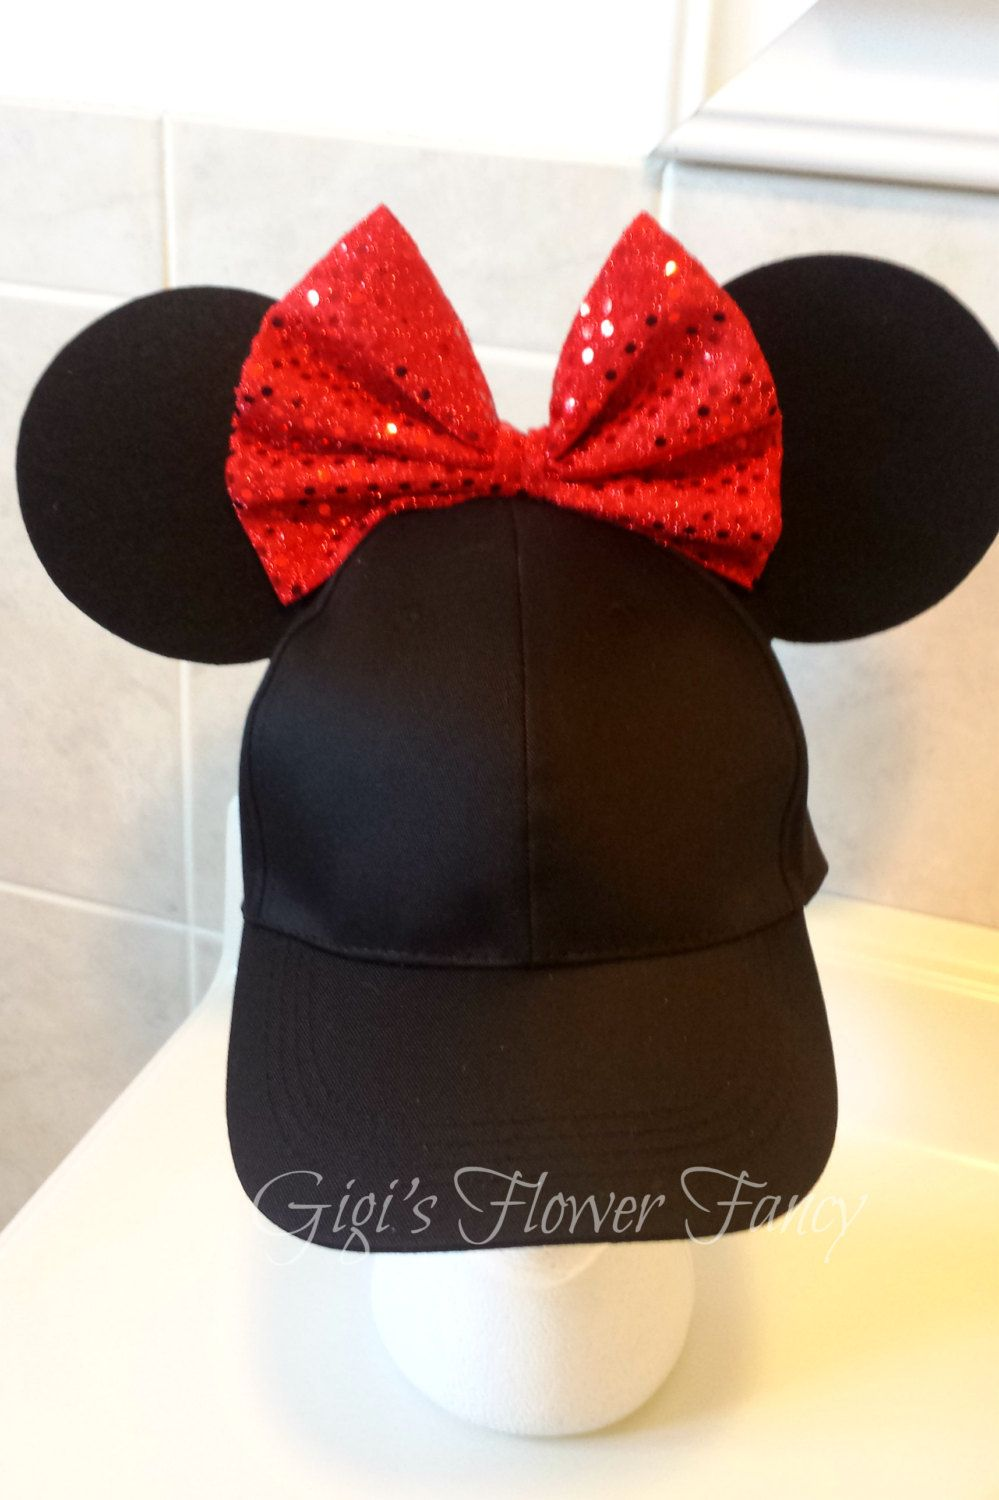 81080c2ac098dc When a headband is not enough - shade your eyes as you walk around the  parks, no need for sunglasses and headband with this awesome Minnie ears hat !